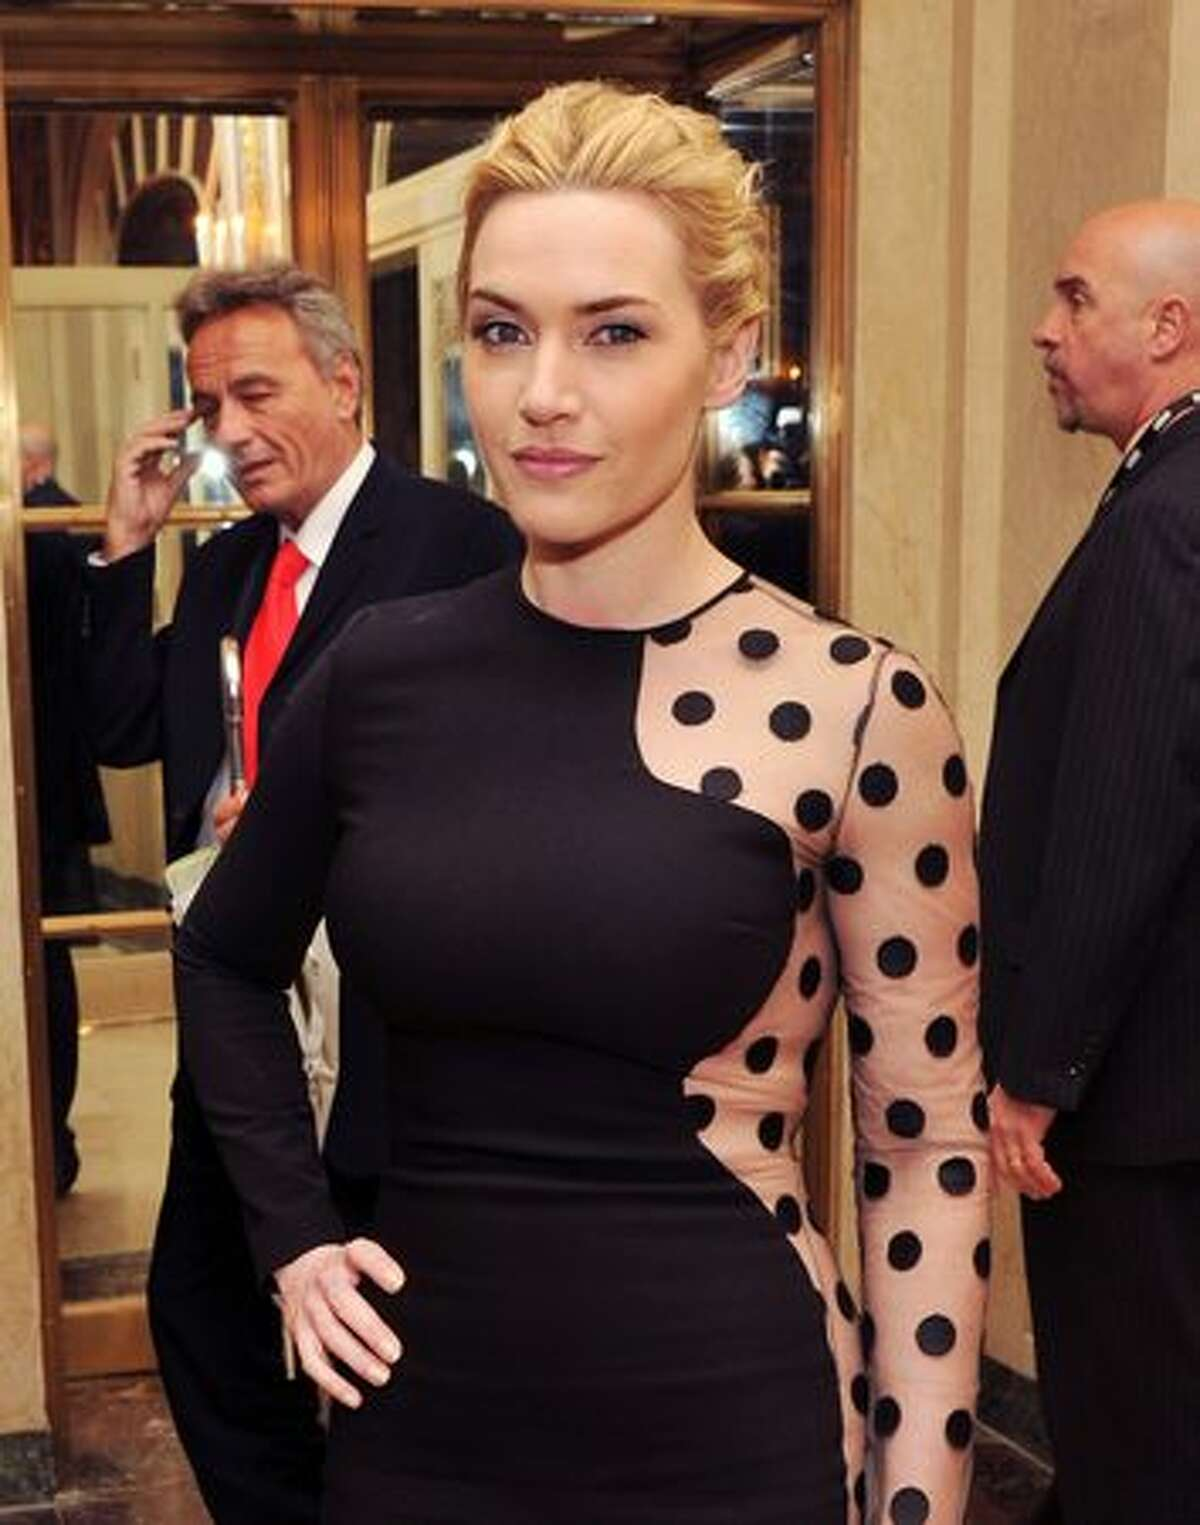 """Actress Kate Winslet attends the after party for the """"Mildred Pierce"""" premiere in the the Grand Ballroom at The Plaza Hotel in New York City."""